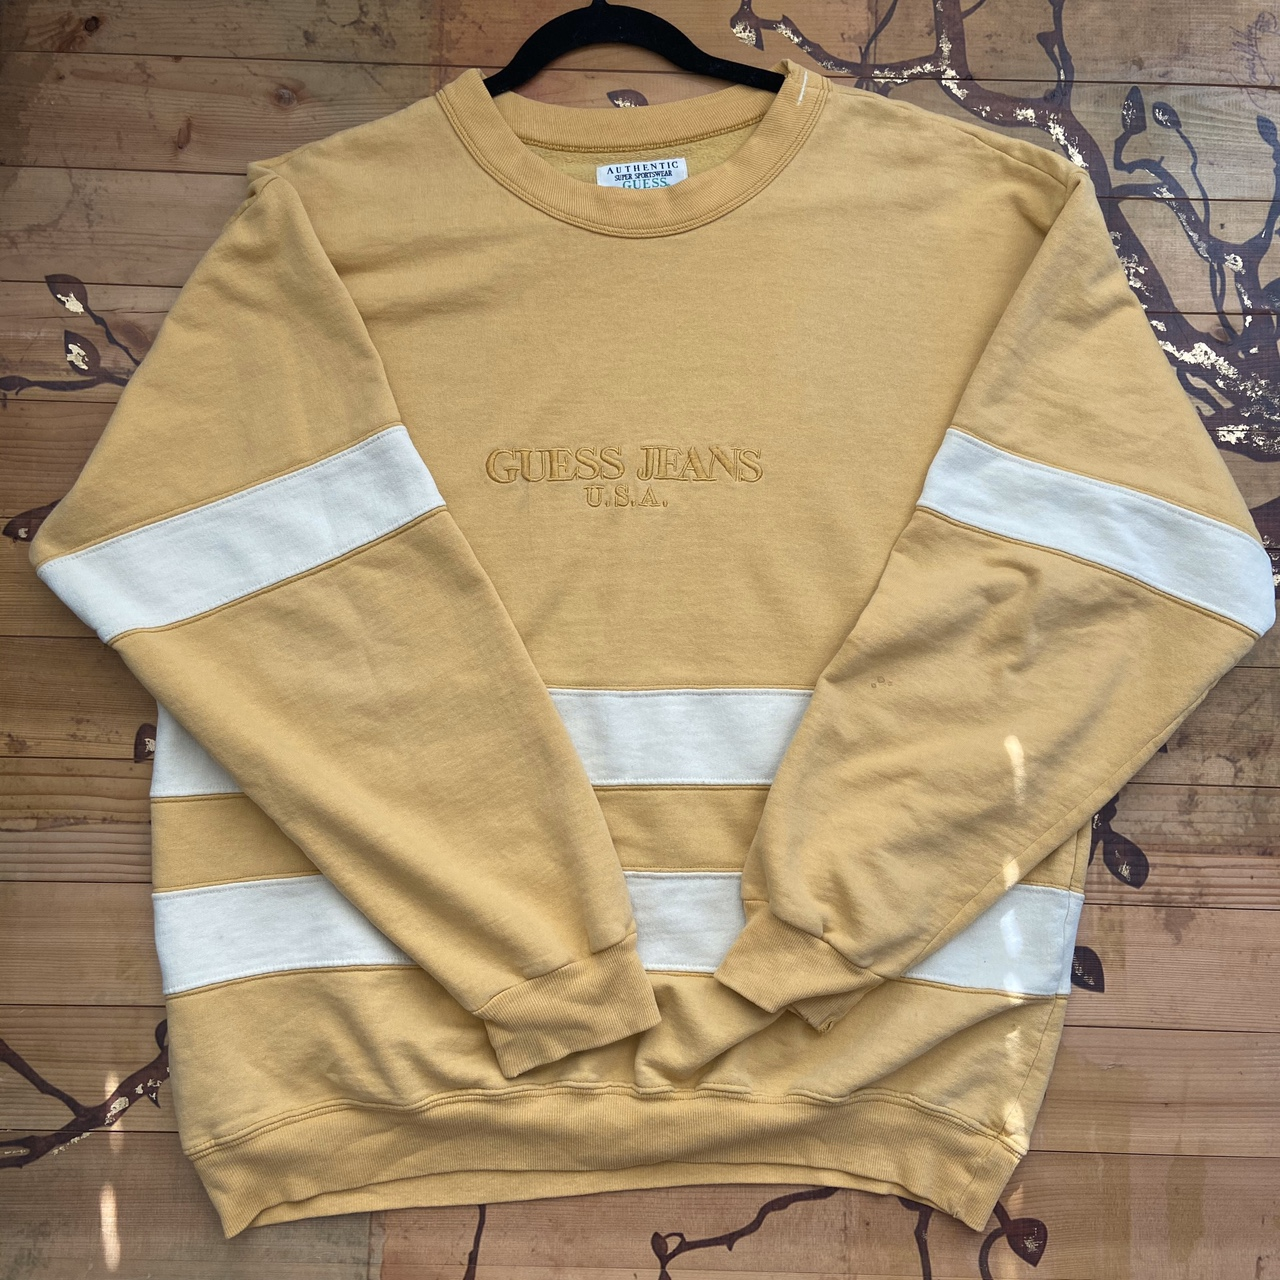 Product Image 1 - Vintage guess sweatshirt Authentic Yellow and